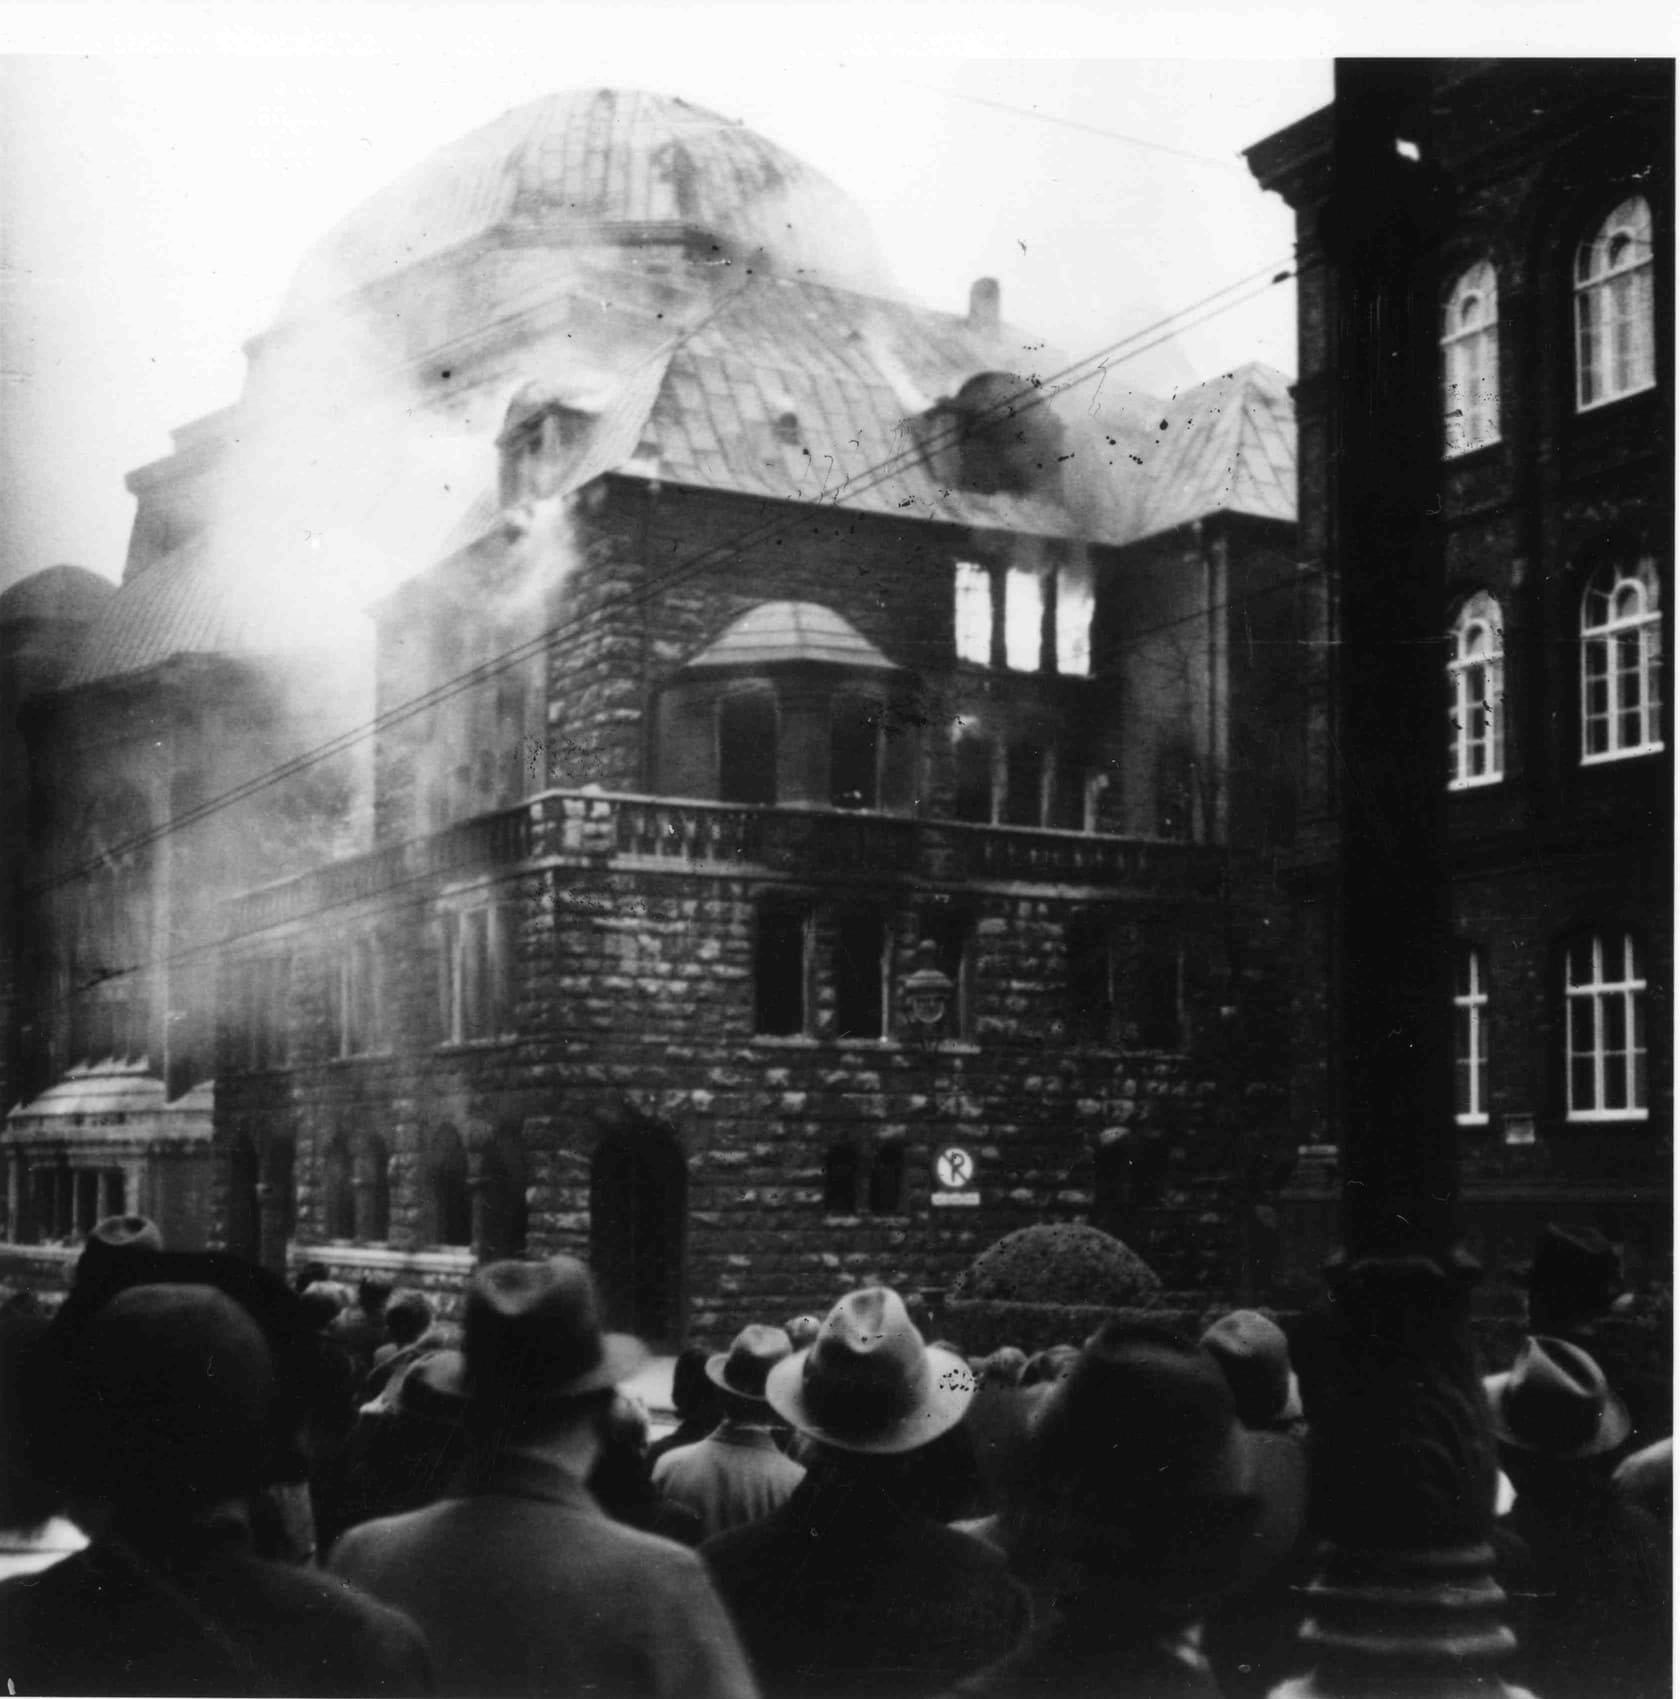 The burnt out synagogue in Essen